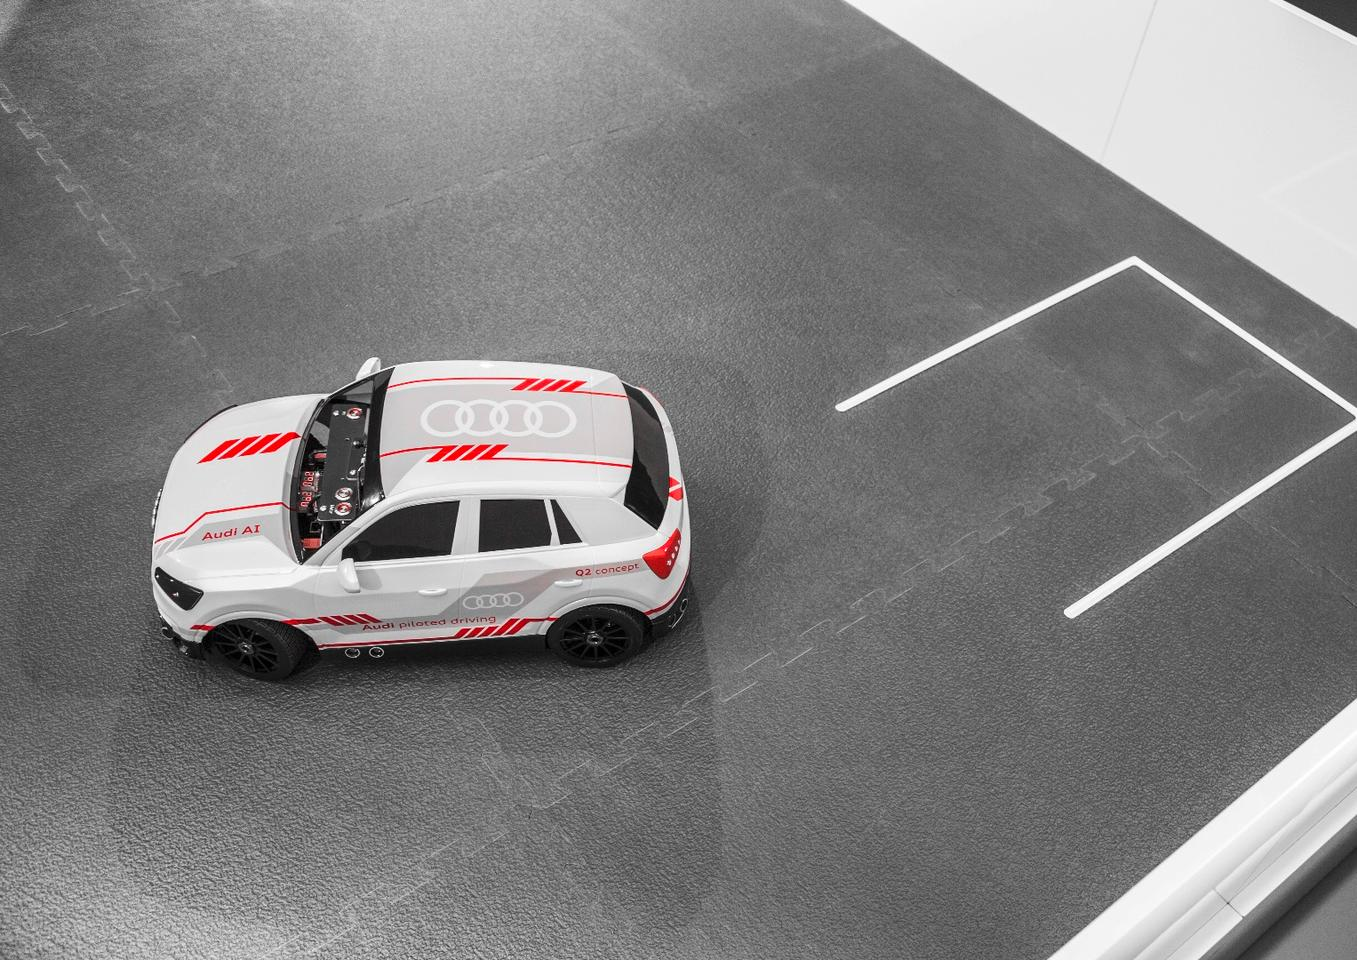 The 1:8-scale model Audi parks within a model parking lot